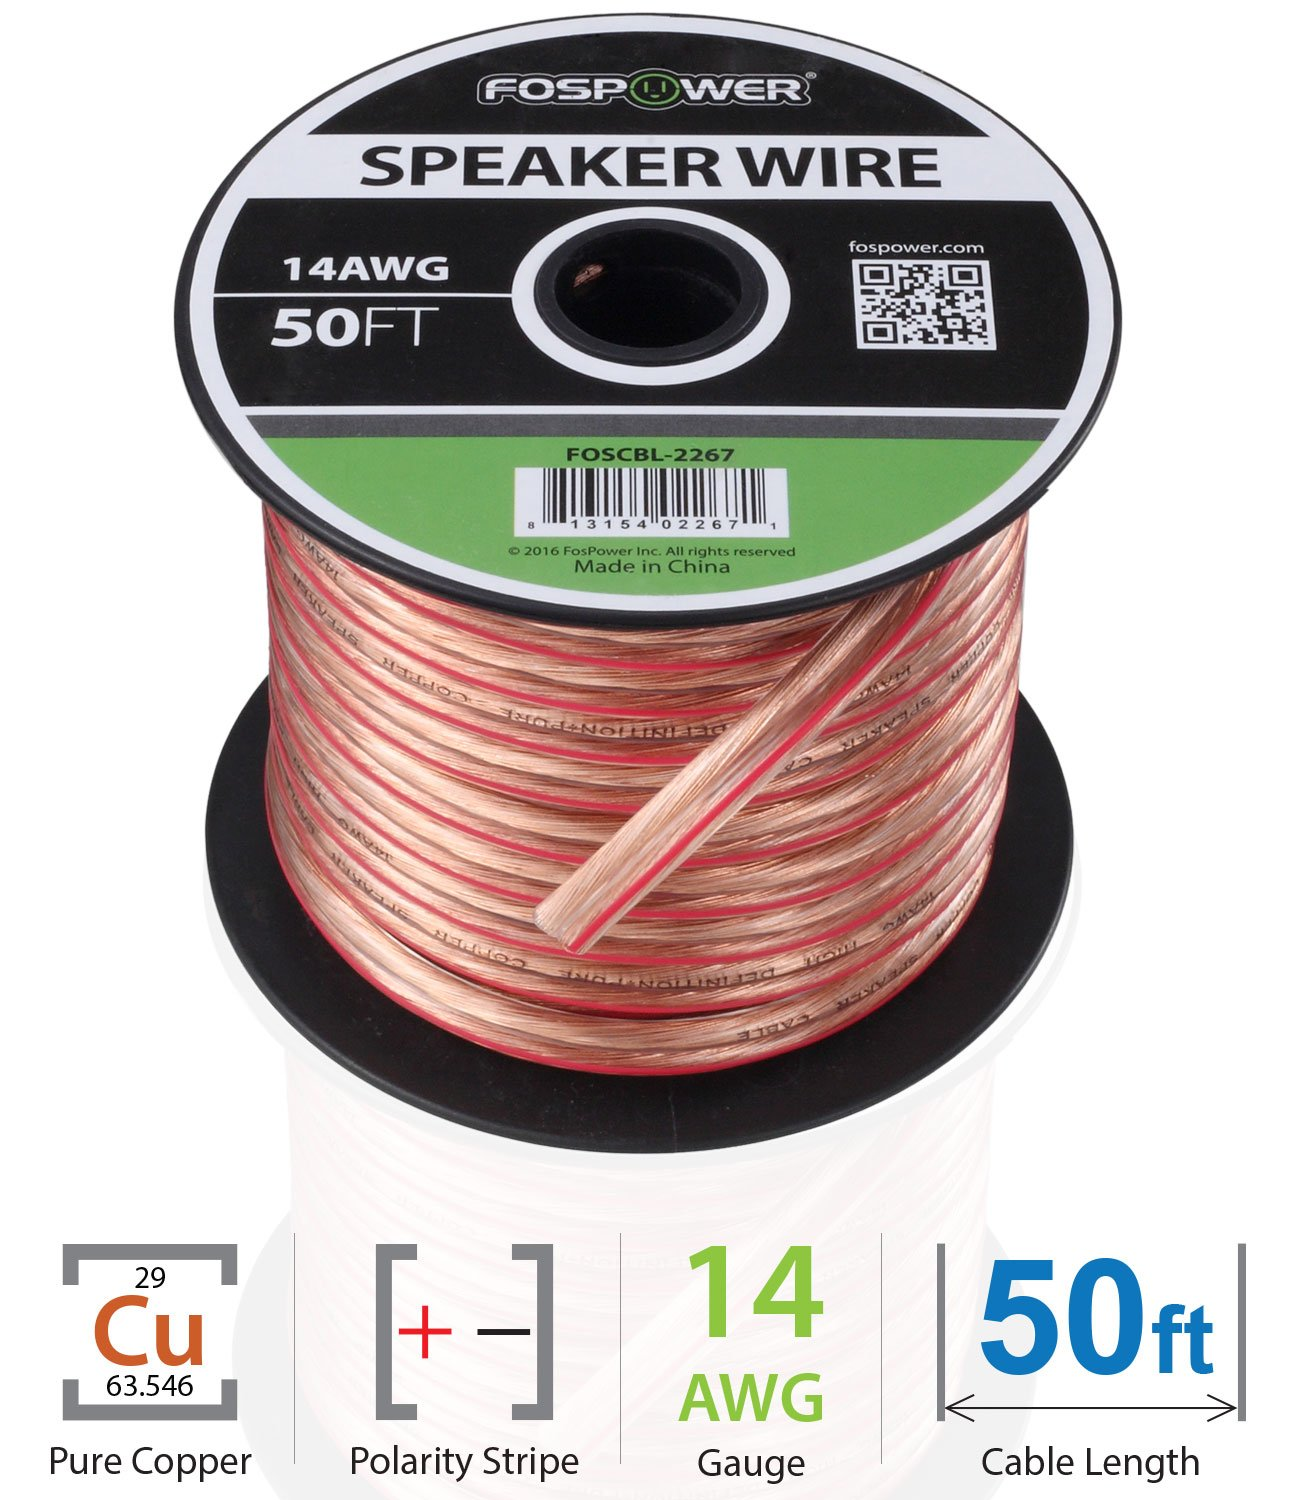 Fospower 14awg Speaker Wire 14 Gauge 50 Ft Premium Speakers Diagram Further Bi Cable On Wiring Spooled Oxygen Free Copper Ofc With Clear Pvc Jacket Polarity Stripe